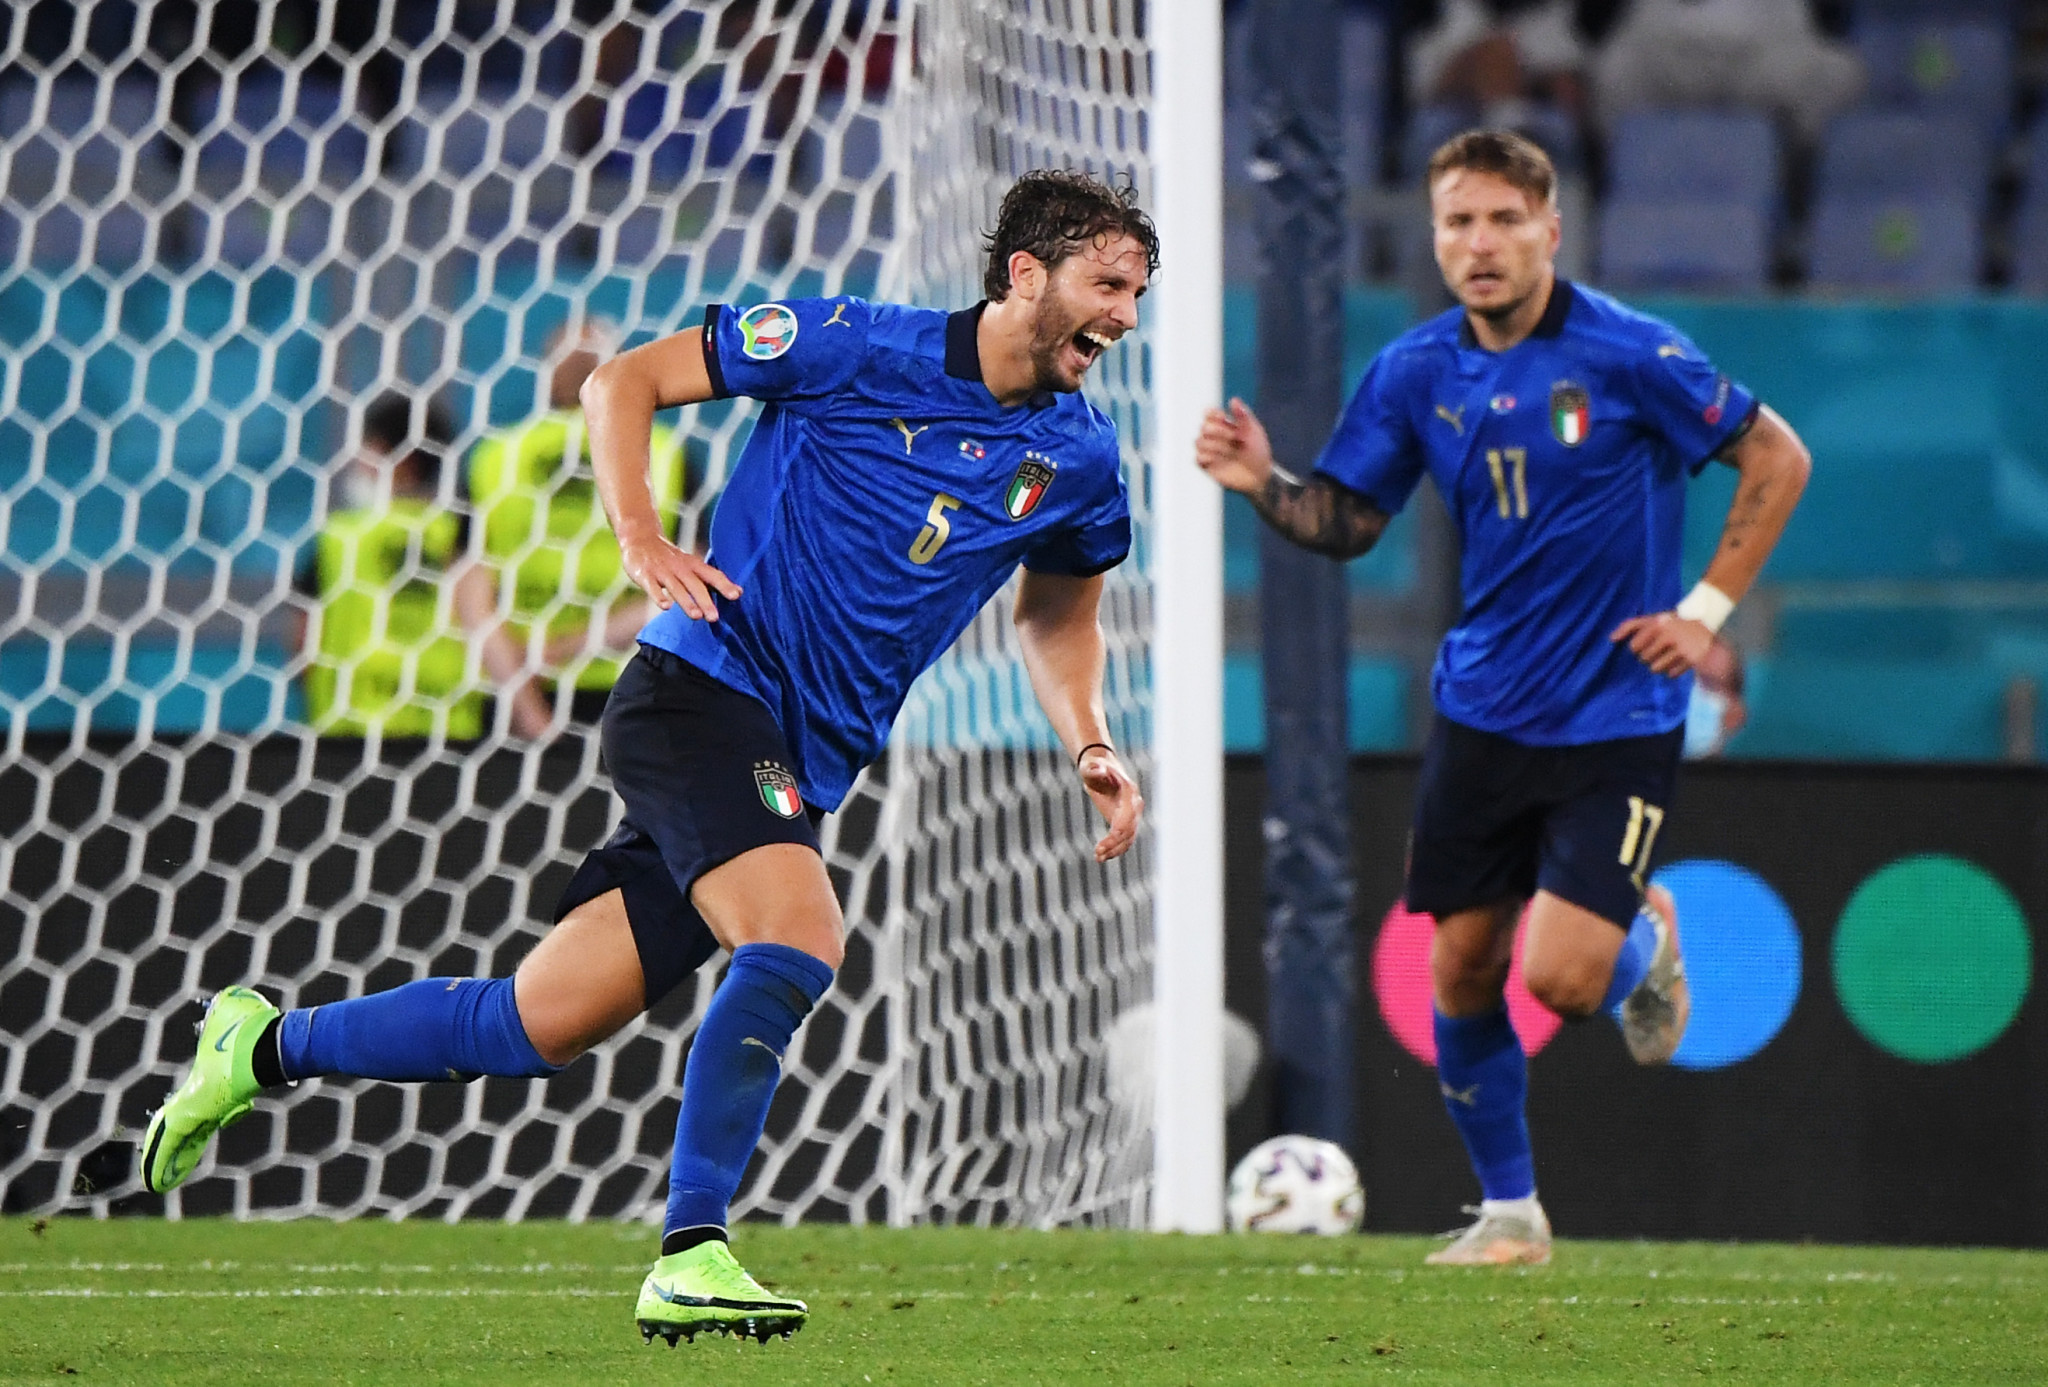 Italy become first side to qualify for next stage of Euro 2020 with second consecutive victory